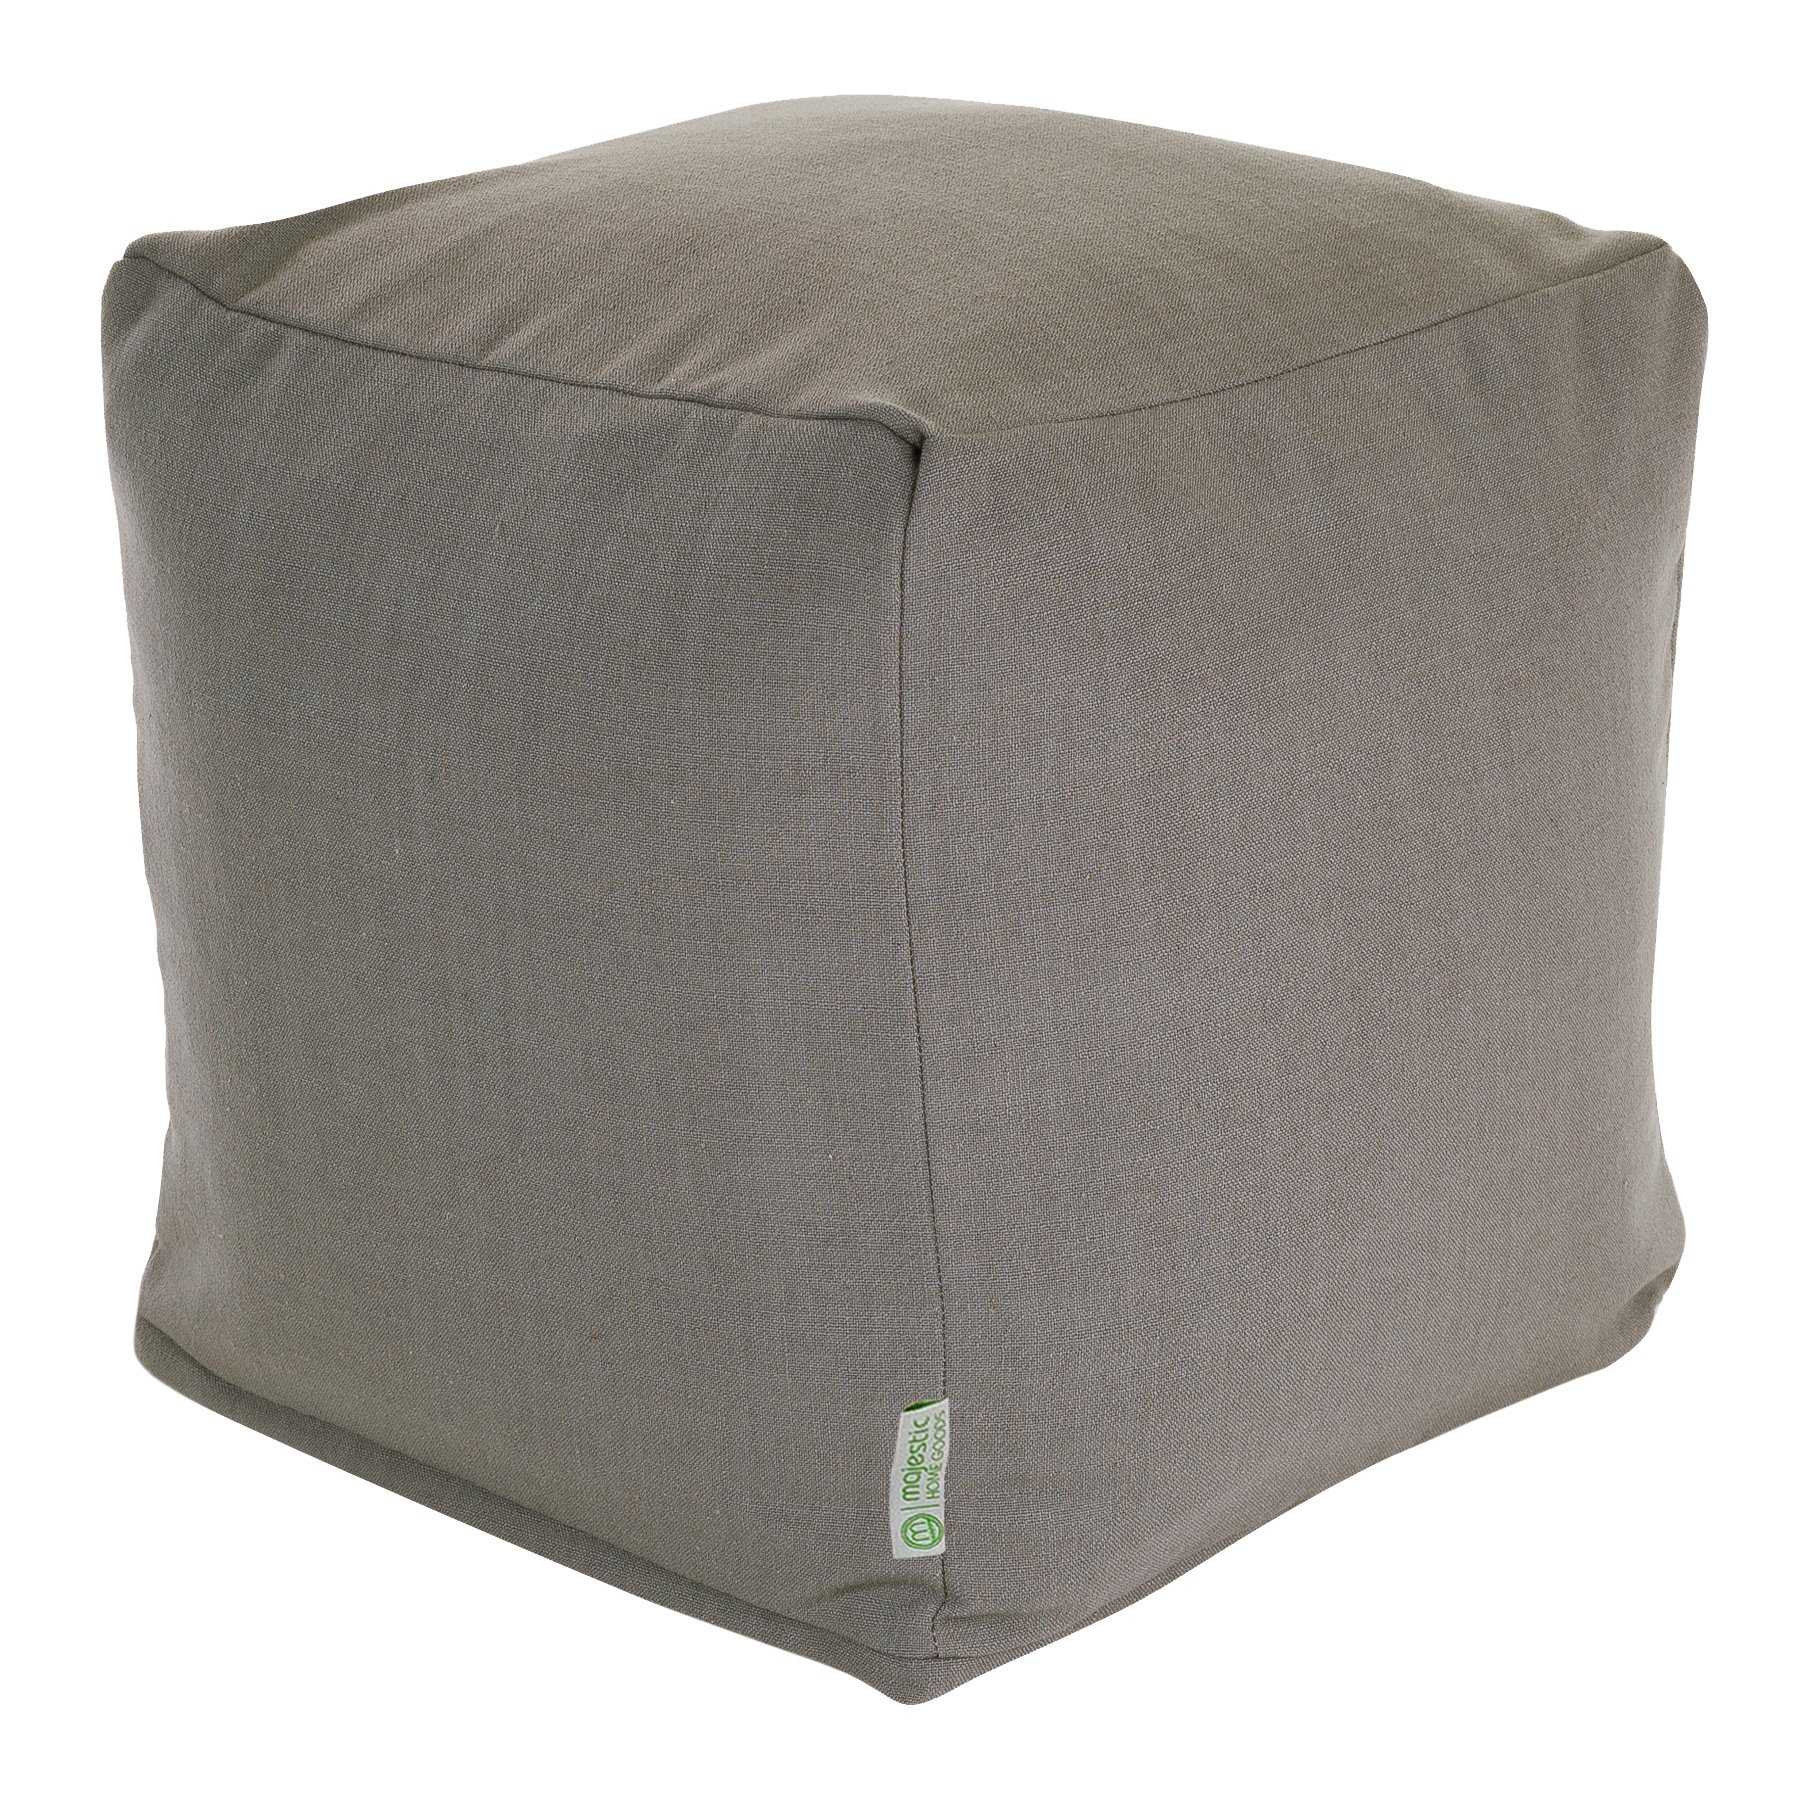 Majestic Home Goods Gray Wales Indoor Bean Bag Ottoman Pouf Cube 17'' L x 17'' W x 17'' H